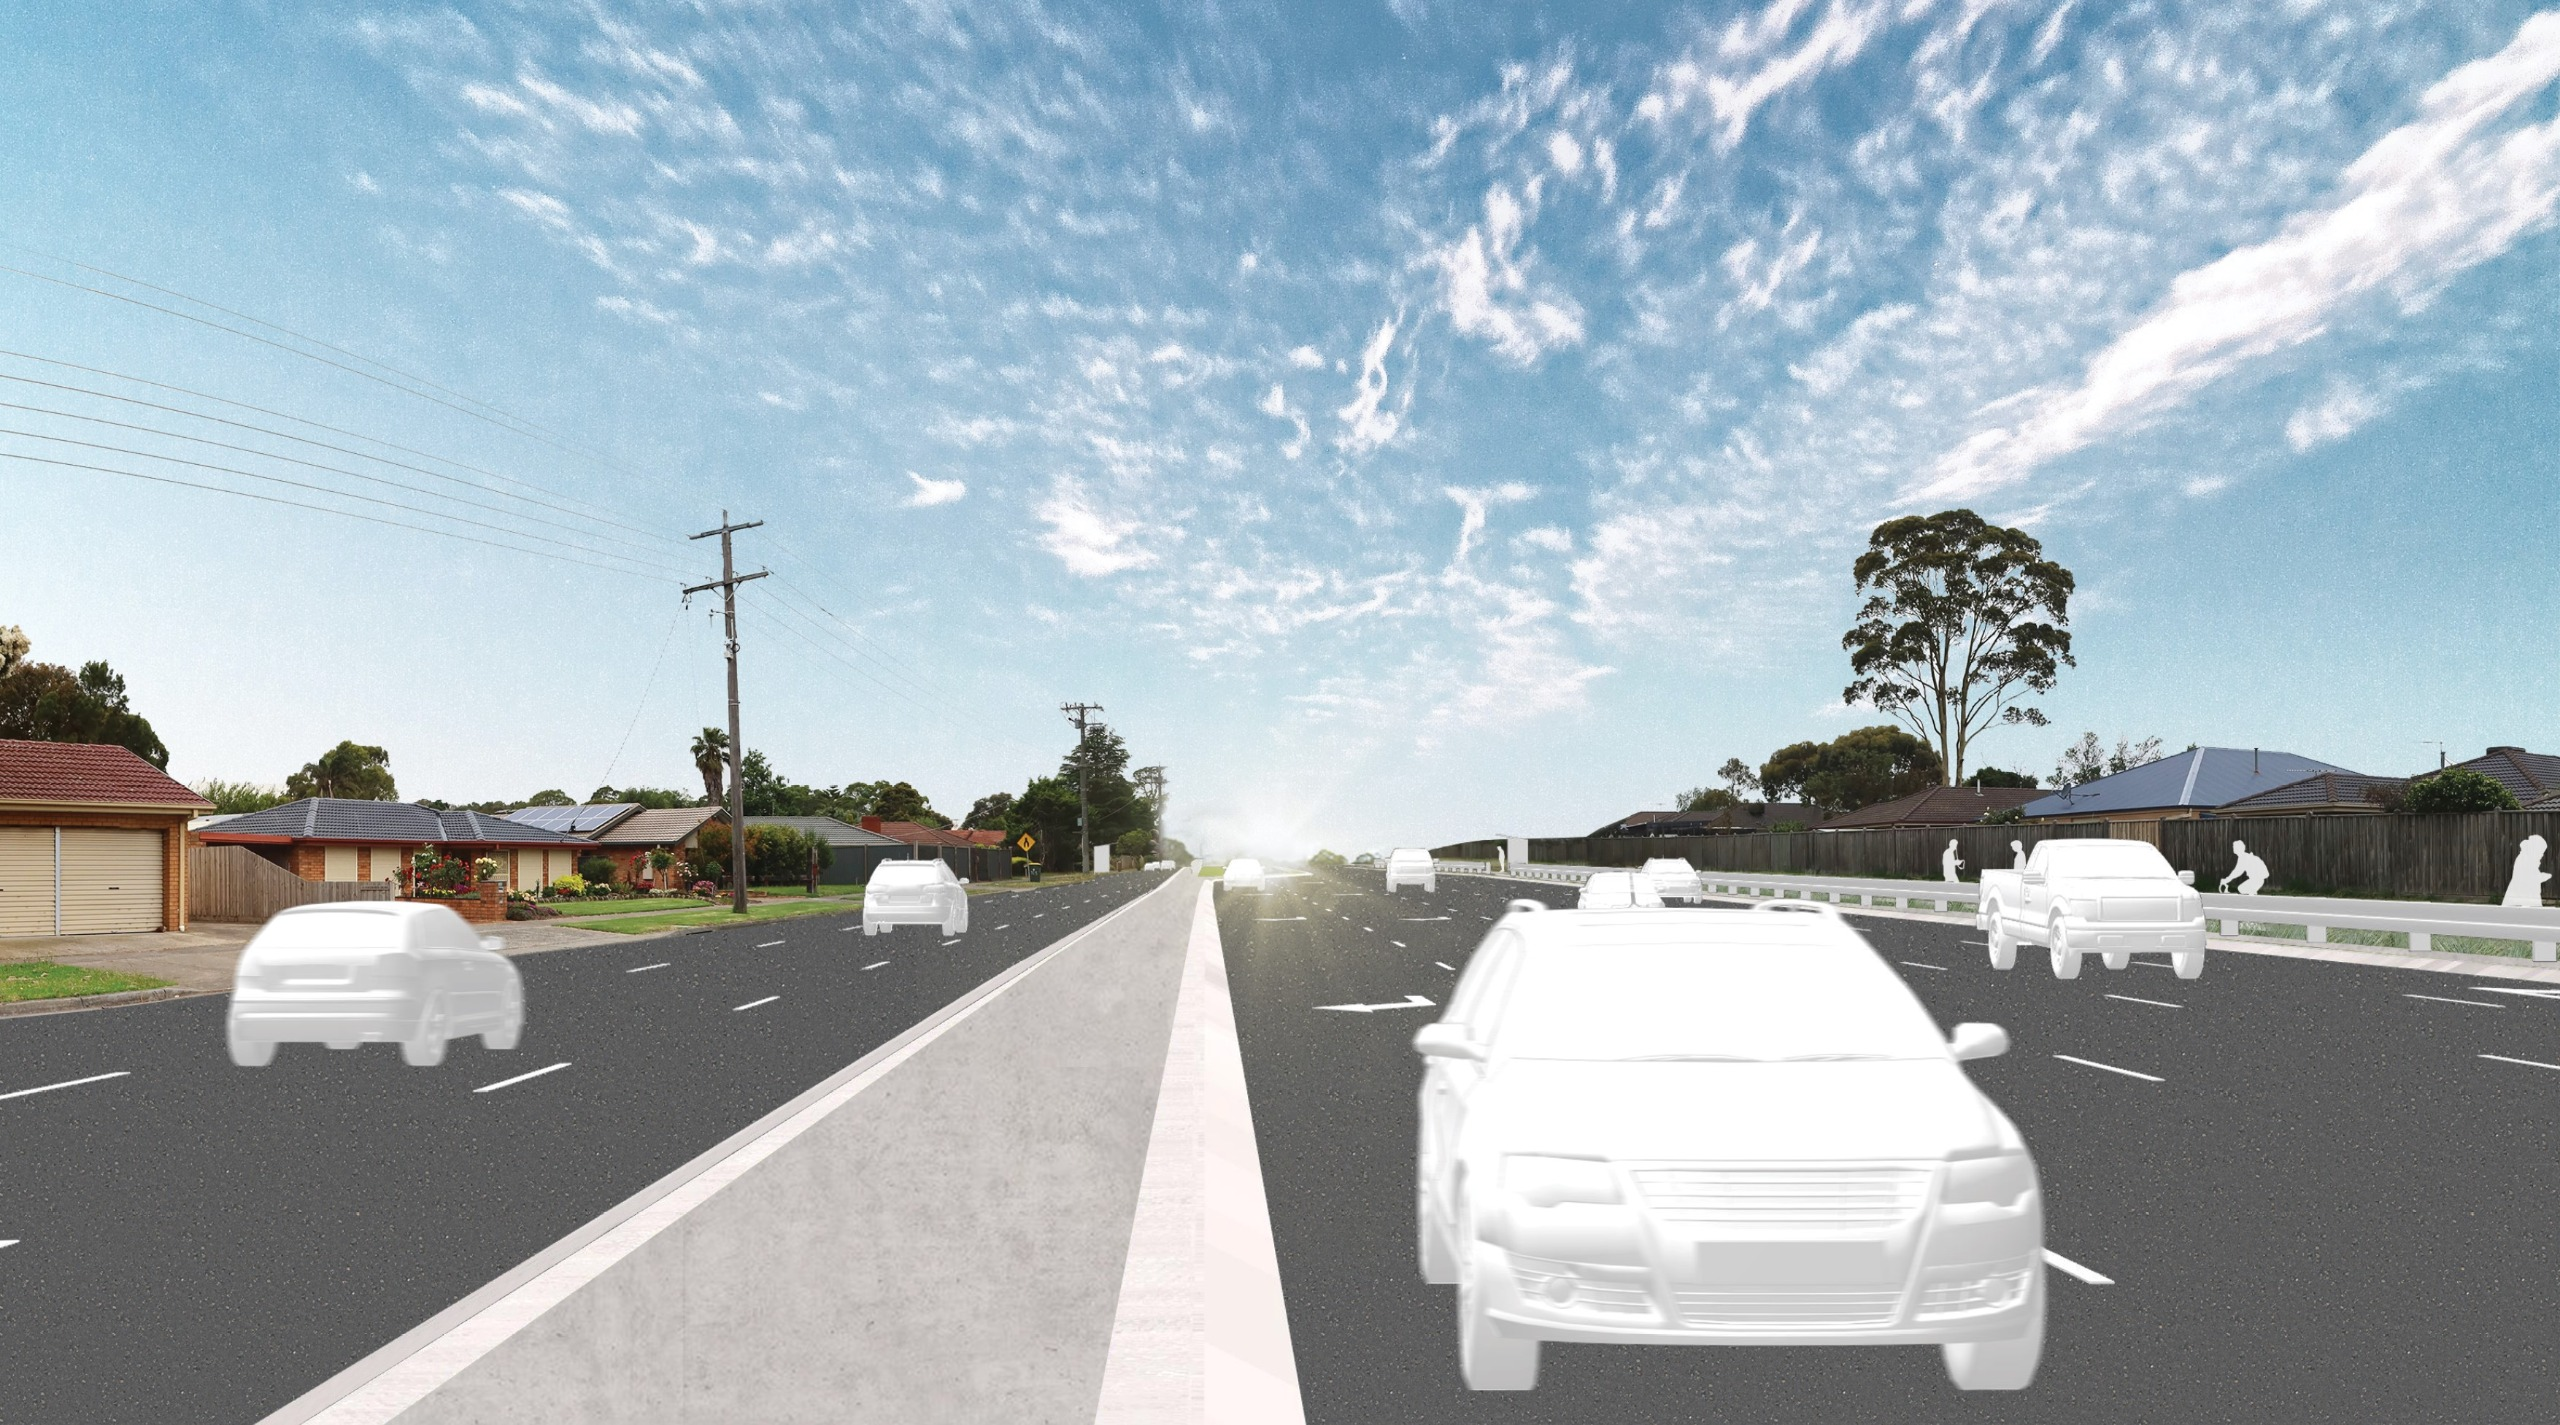 Artist's impression of cars driving through the McCormicks Road intersection 15 years after project completion